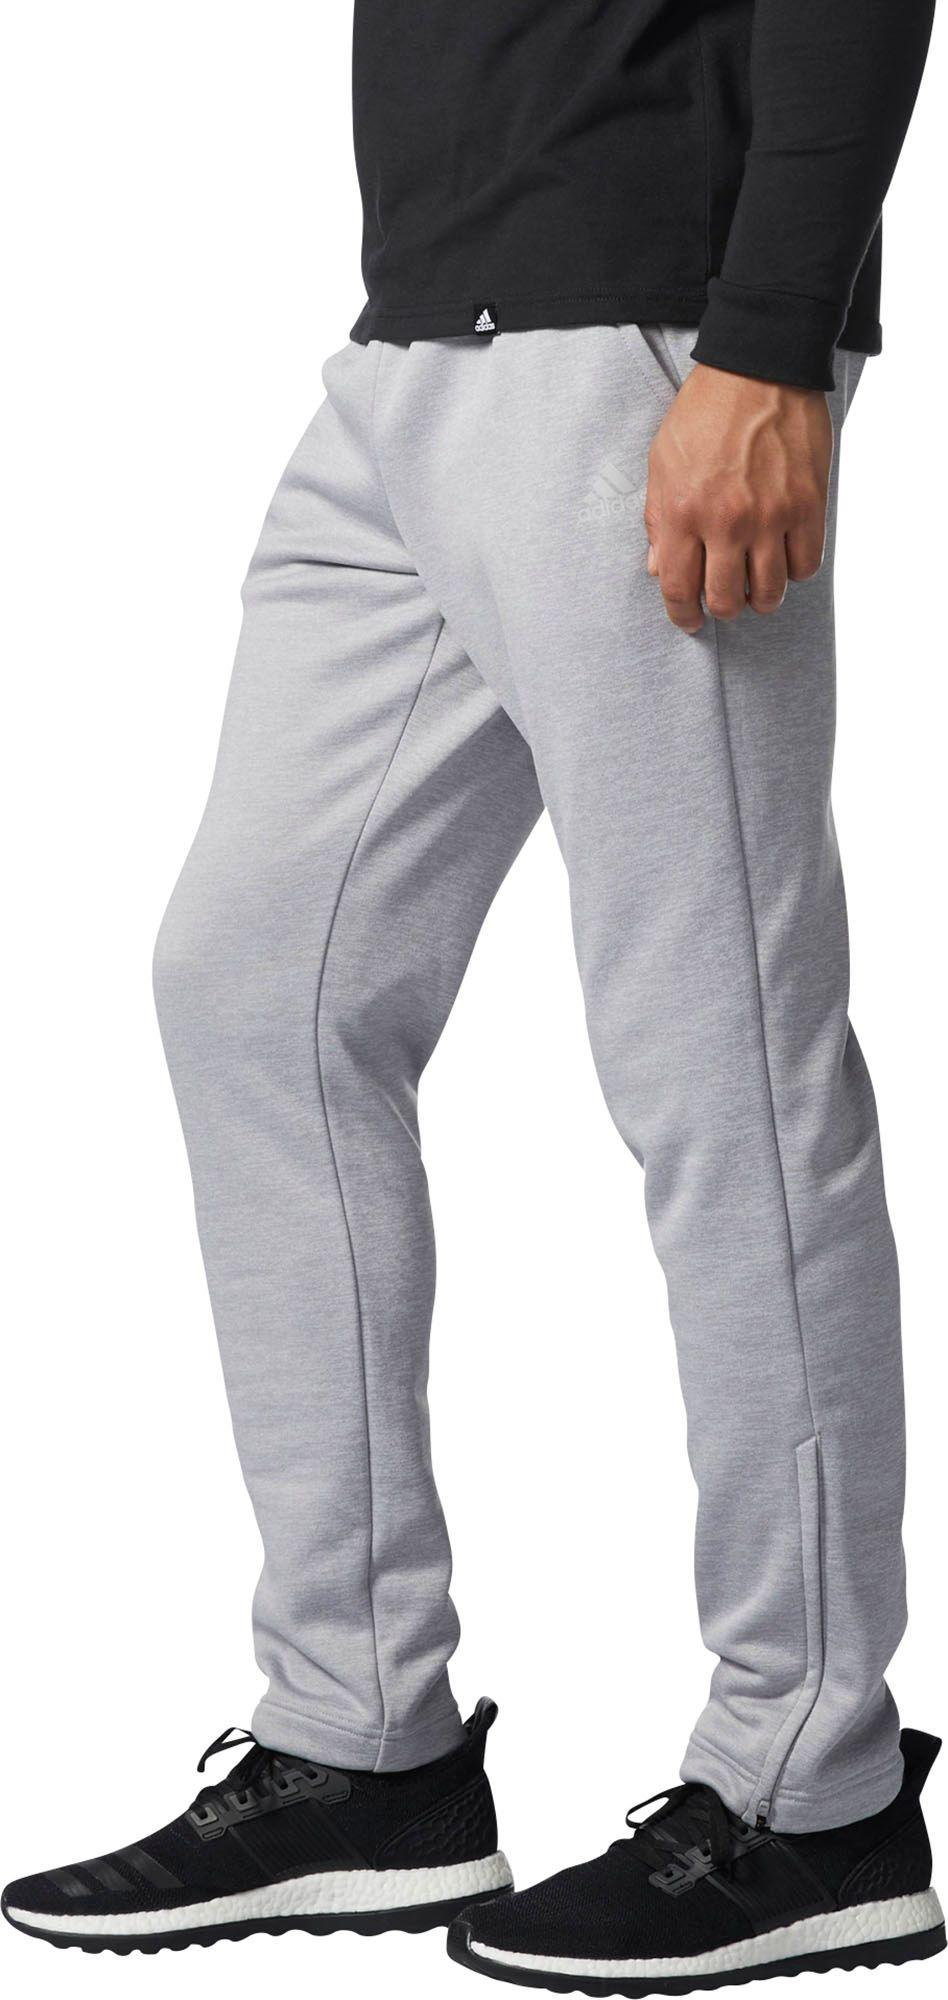 26e740fc16a7 Adidas Gray Athletics Team Issue Fleece Tapered Pants for men